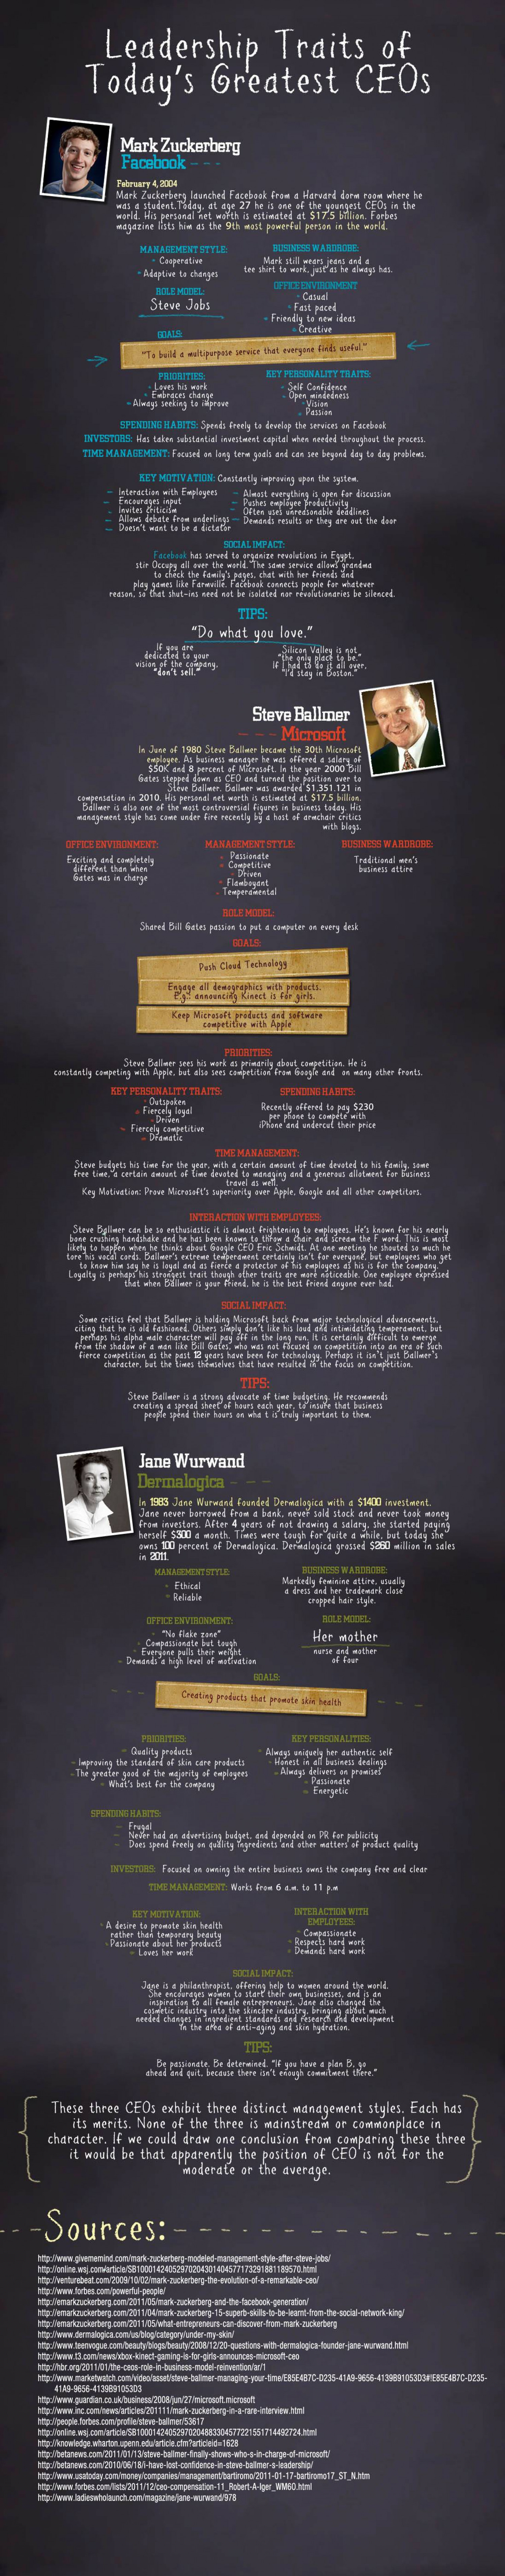 Leadership Traits of Todays Greatest CEOs Infographic